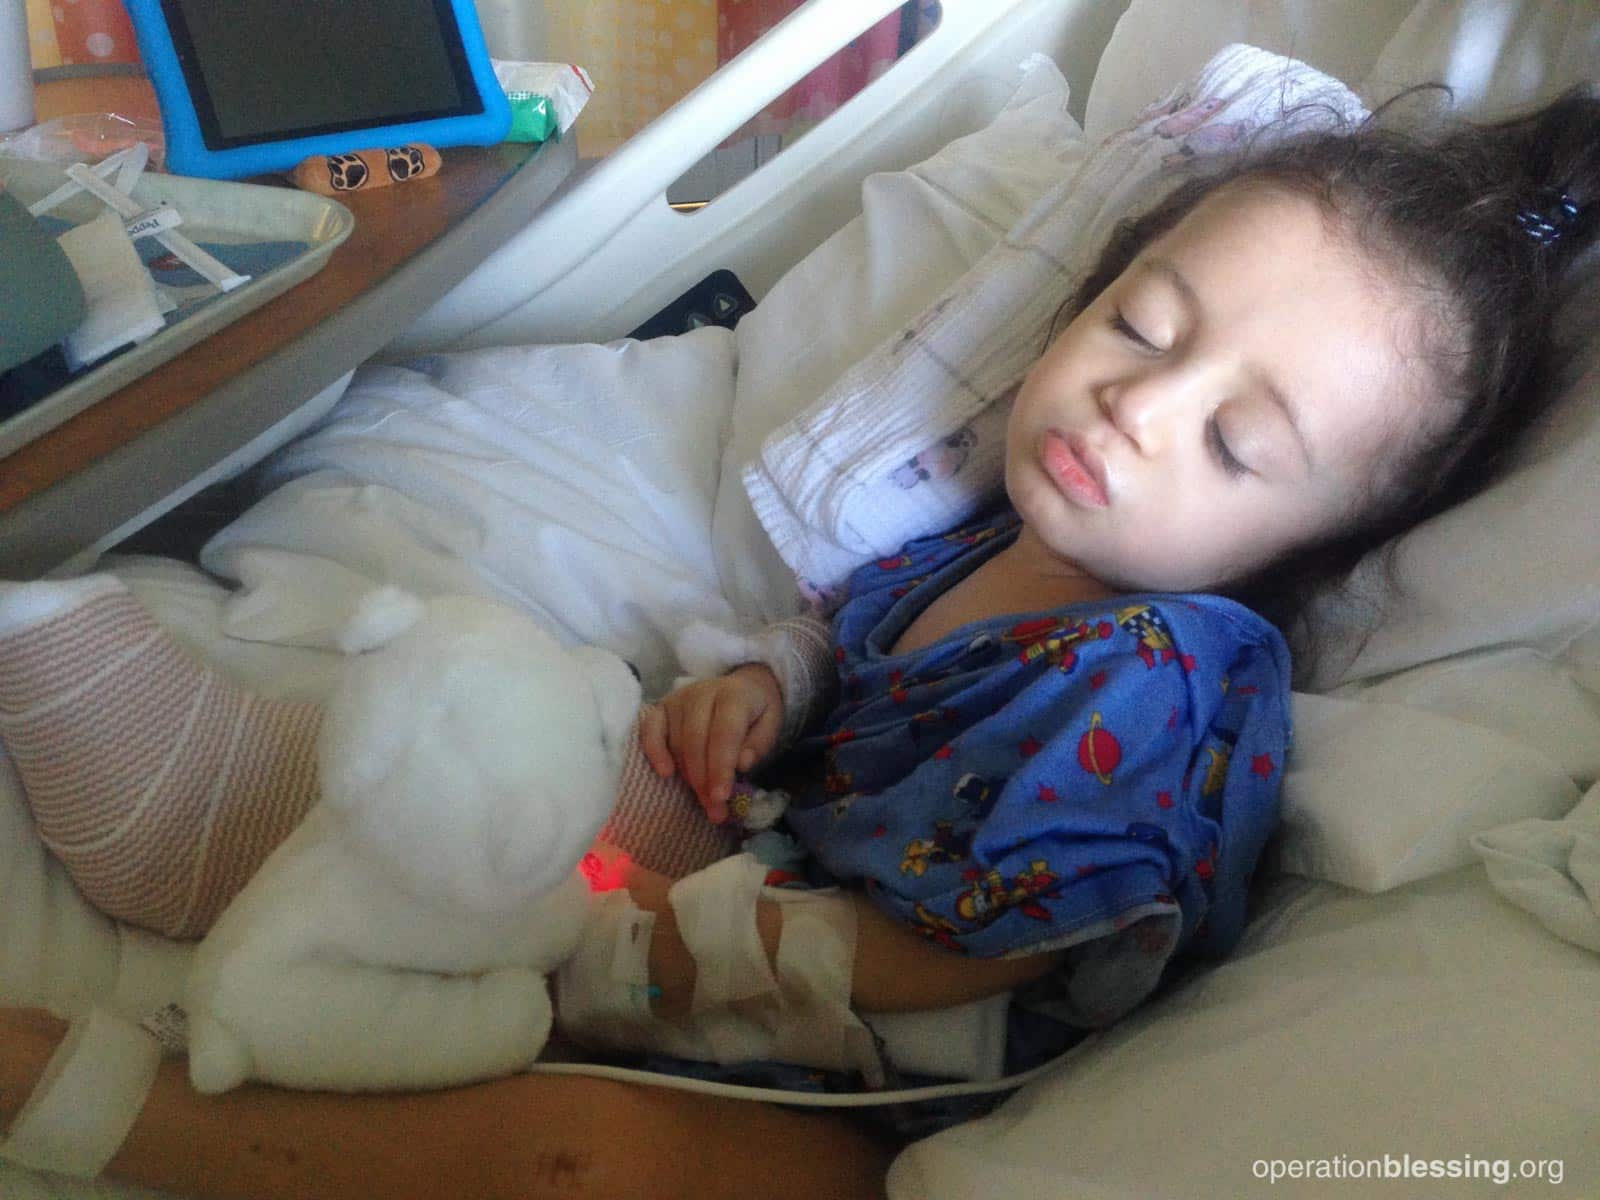 Daniella lying in a hospital bed, suffering from a genetic disorder.